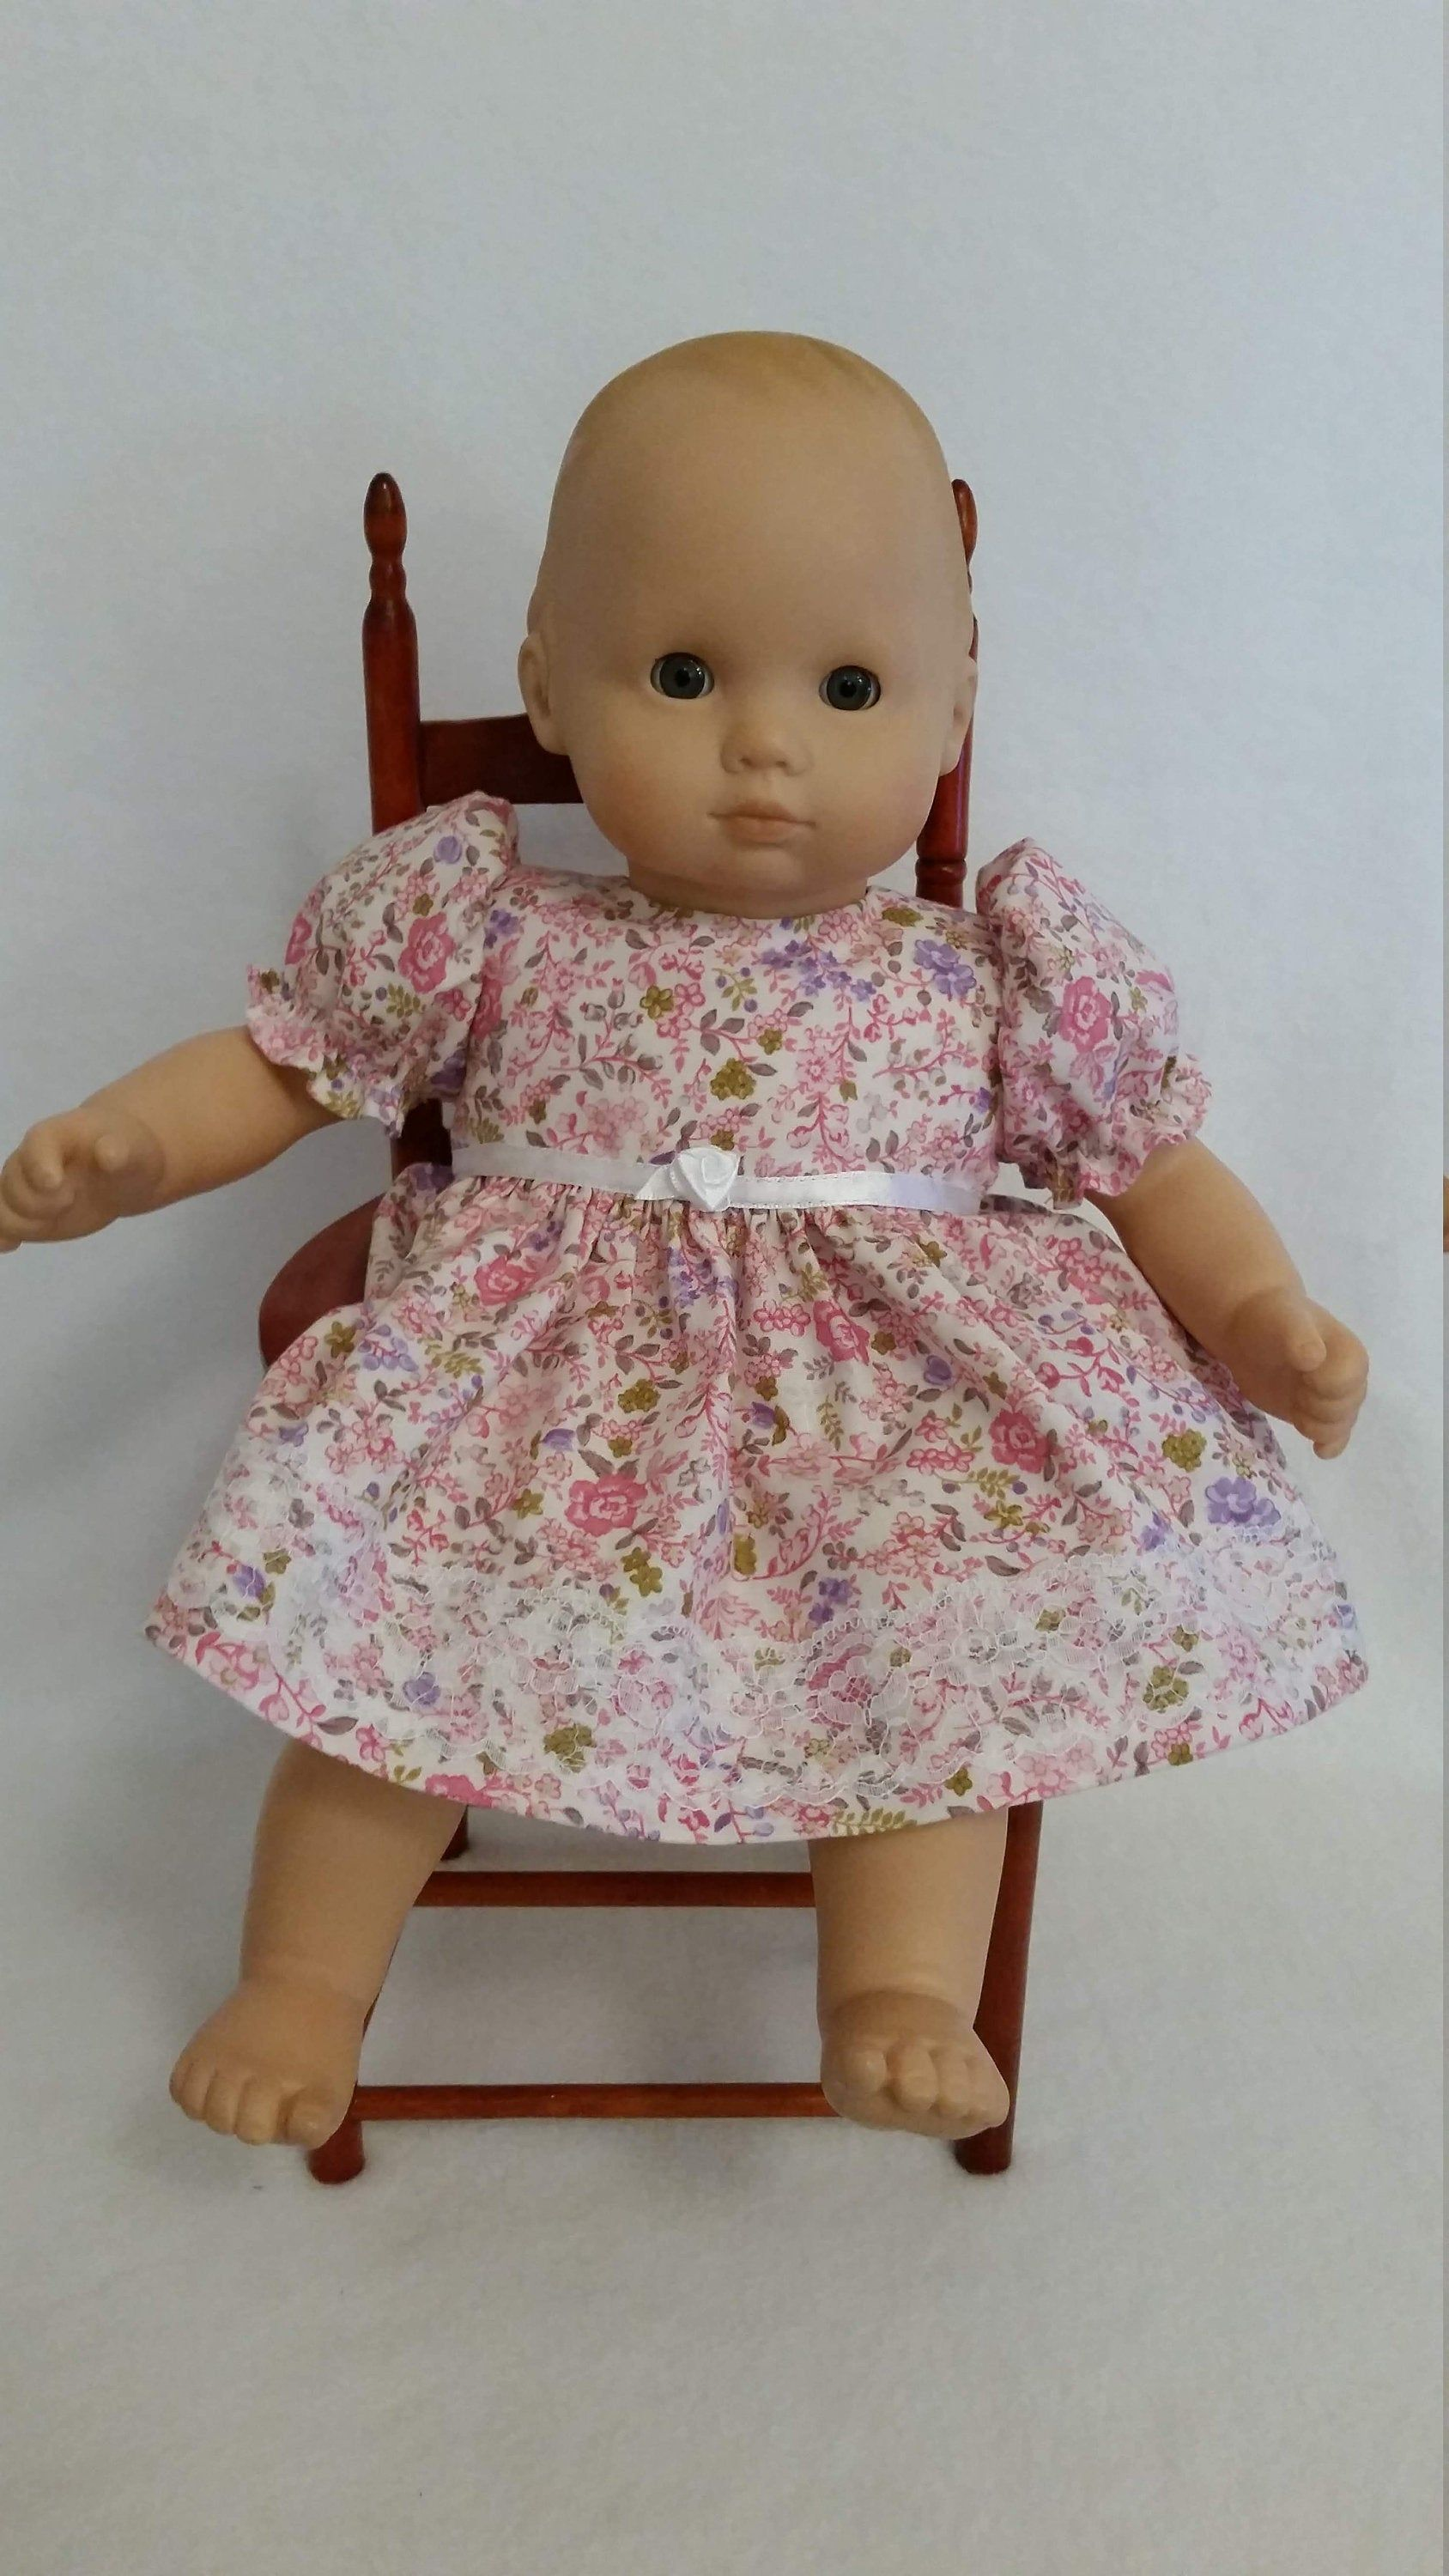 15 Baby Doll Dress Pink Floral With Lace Fits Bitty Baby Berenguer Reborn Silicone Handmade Baby Bitty Baby Clothes Baby Clothes Patterns Baby Doll Clothes